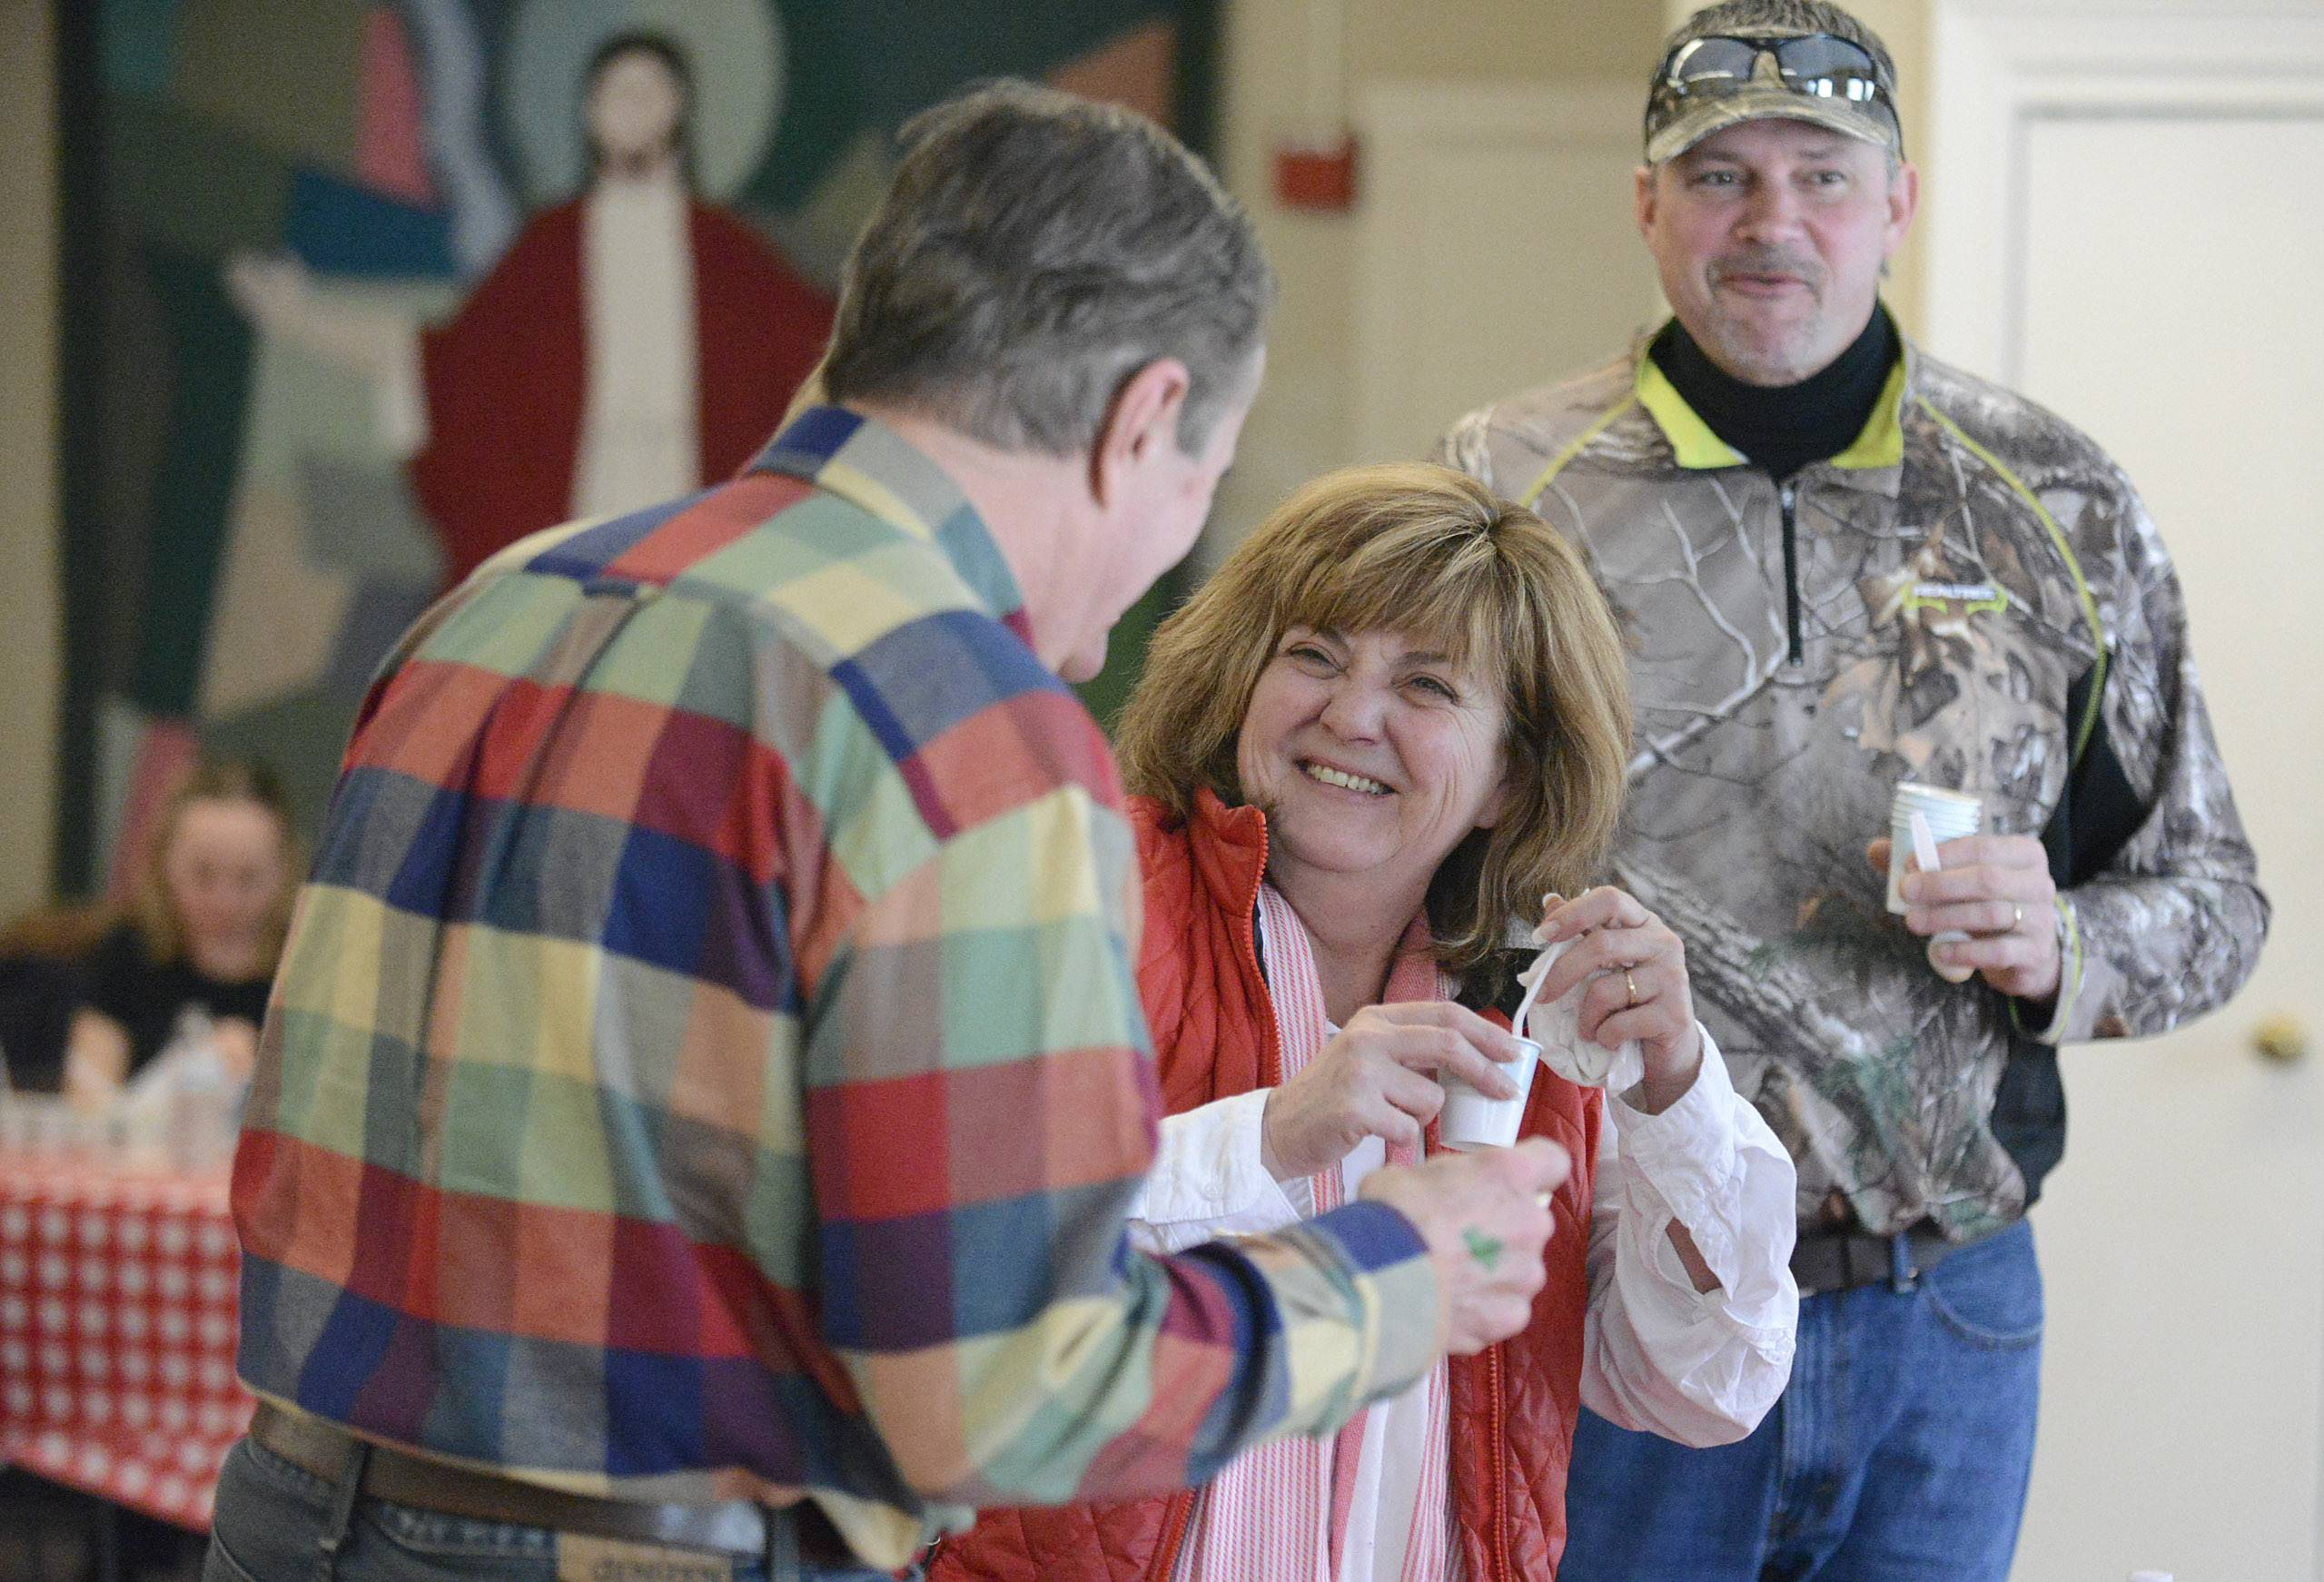 Laura Stoecker/lstoecker@dailyherald.comJosephine Zema, of St. Charles, jokes with Dick Hattan, of Geneva, while they sample chili by contestant Dallas Heikkinen at St. Charles Episcopal Church's first annual chili cook-off on Saturday. Zema's friend, Halbe Wynstra of Capron, right, and his wife Robyn, attended for the fun. Zema, Hattan and Heikkinen are all parishioners at the church.